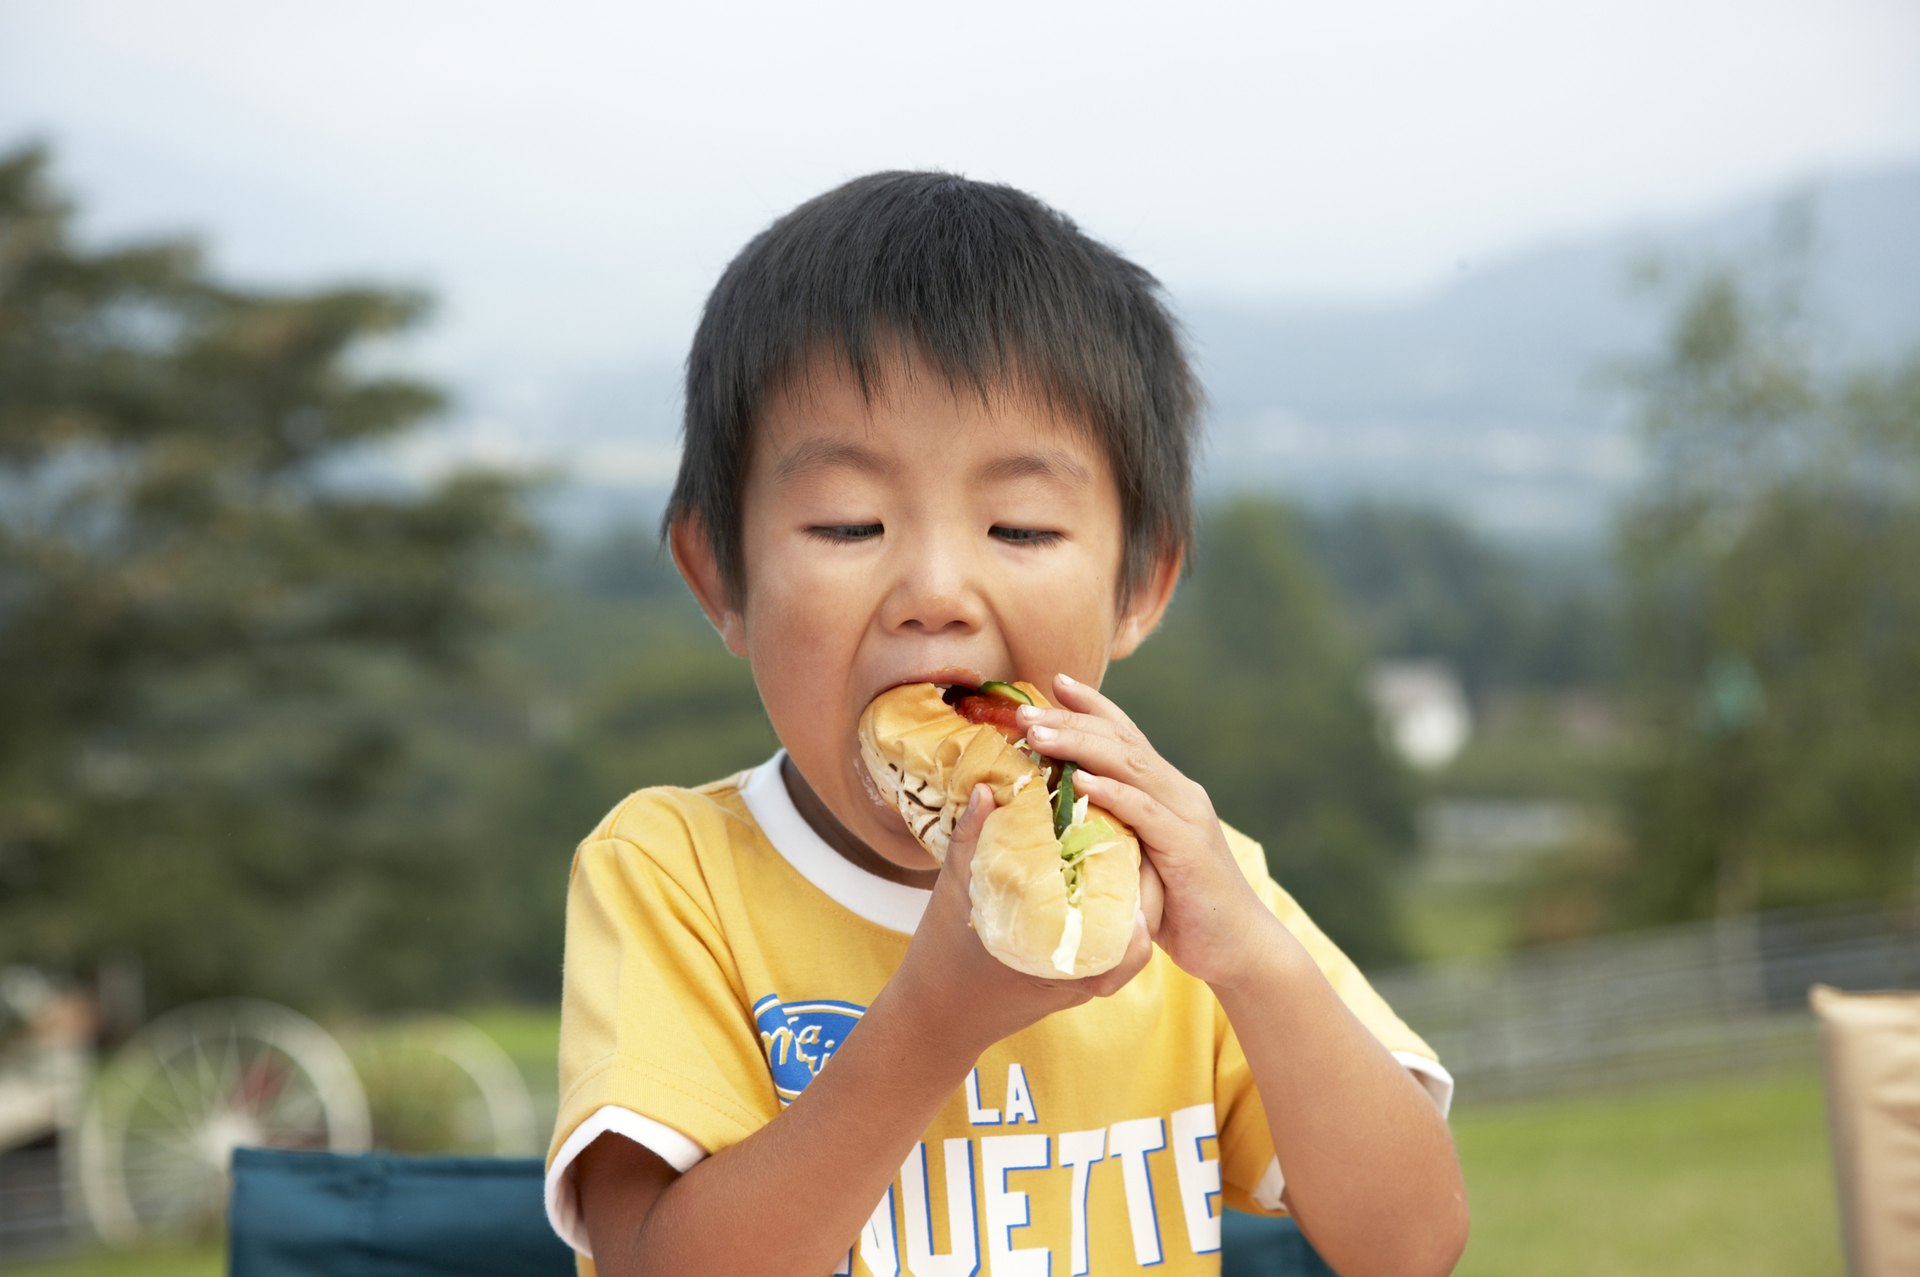 What to Feed Children to Increase Their Growth